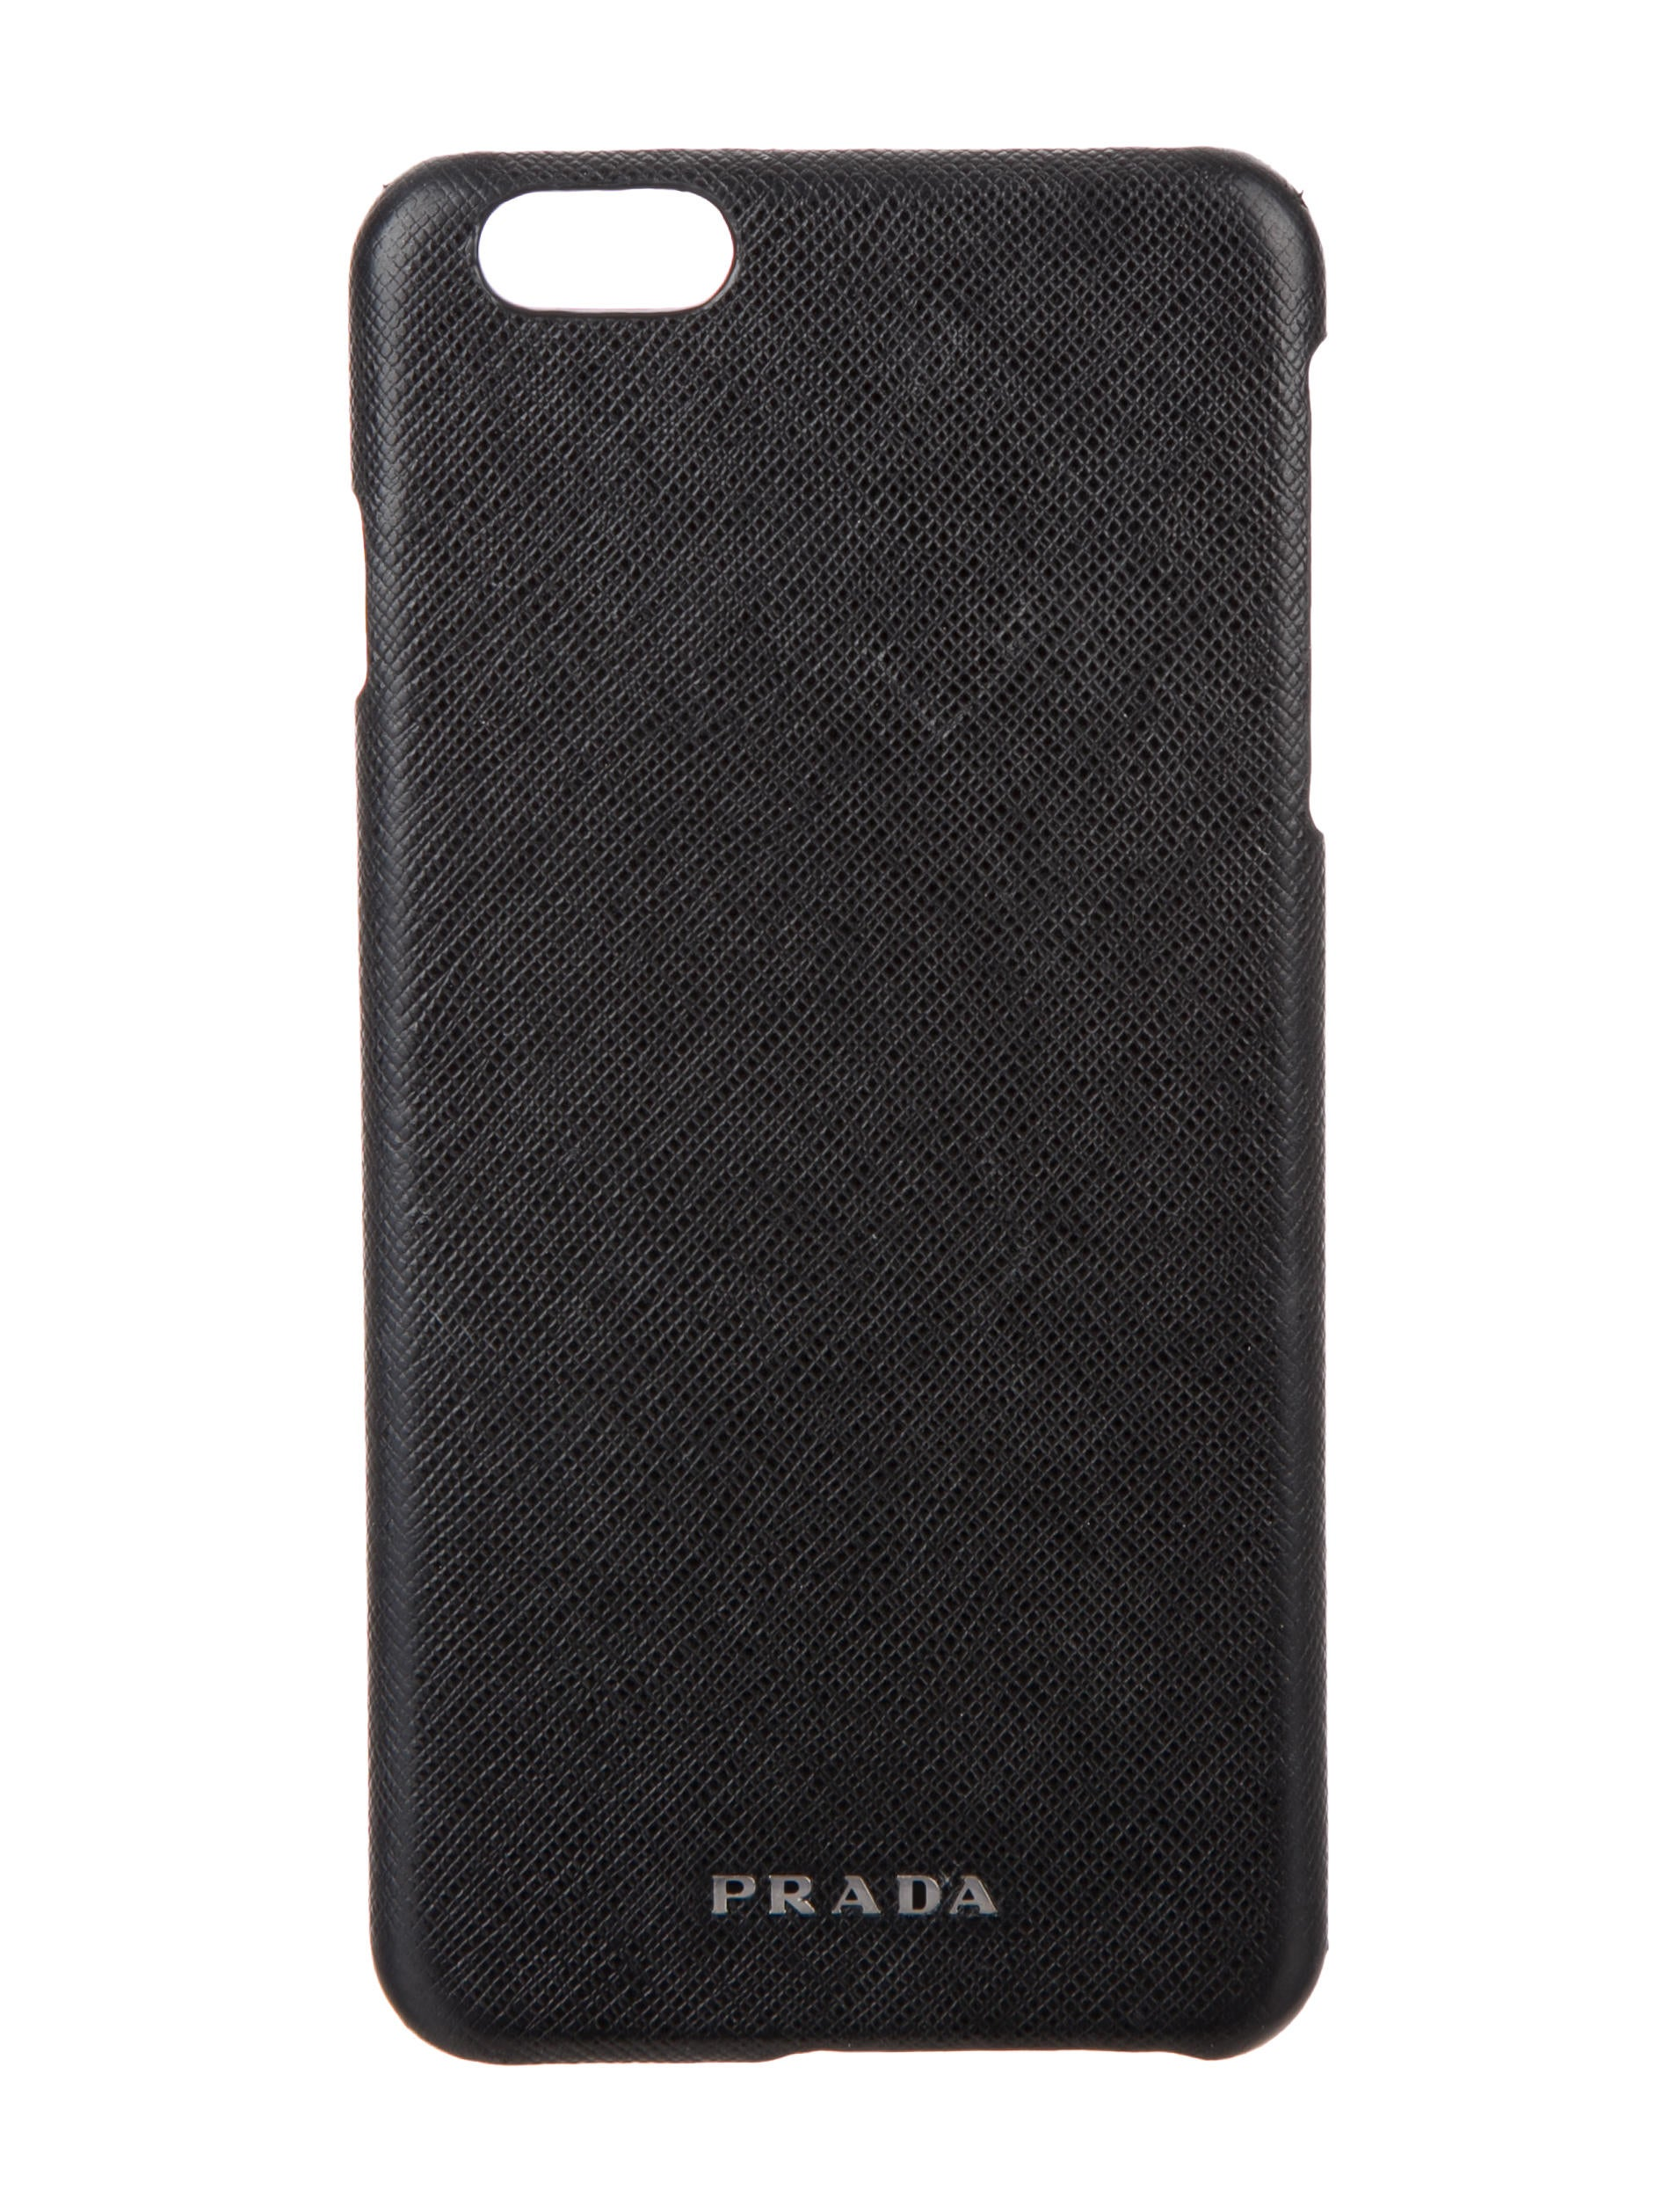 Prada iPhone Cases On Sale, Iphone 7,8 Holder, Black, Saffiano, 2017, one size